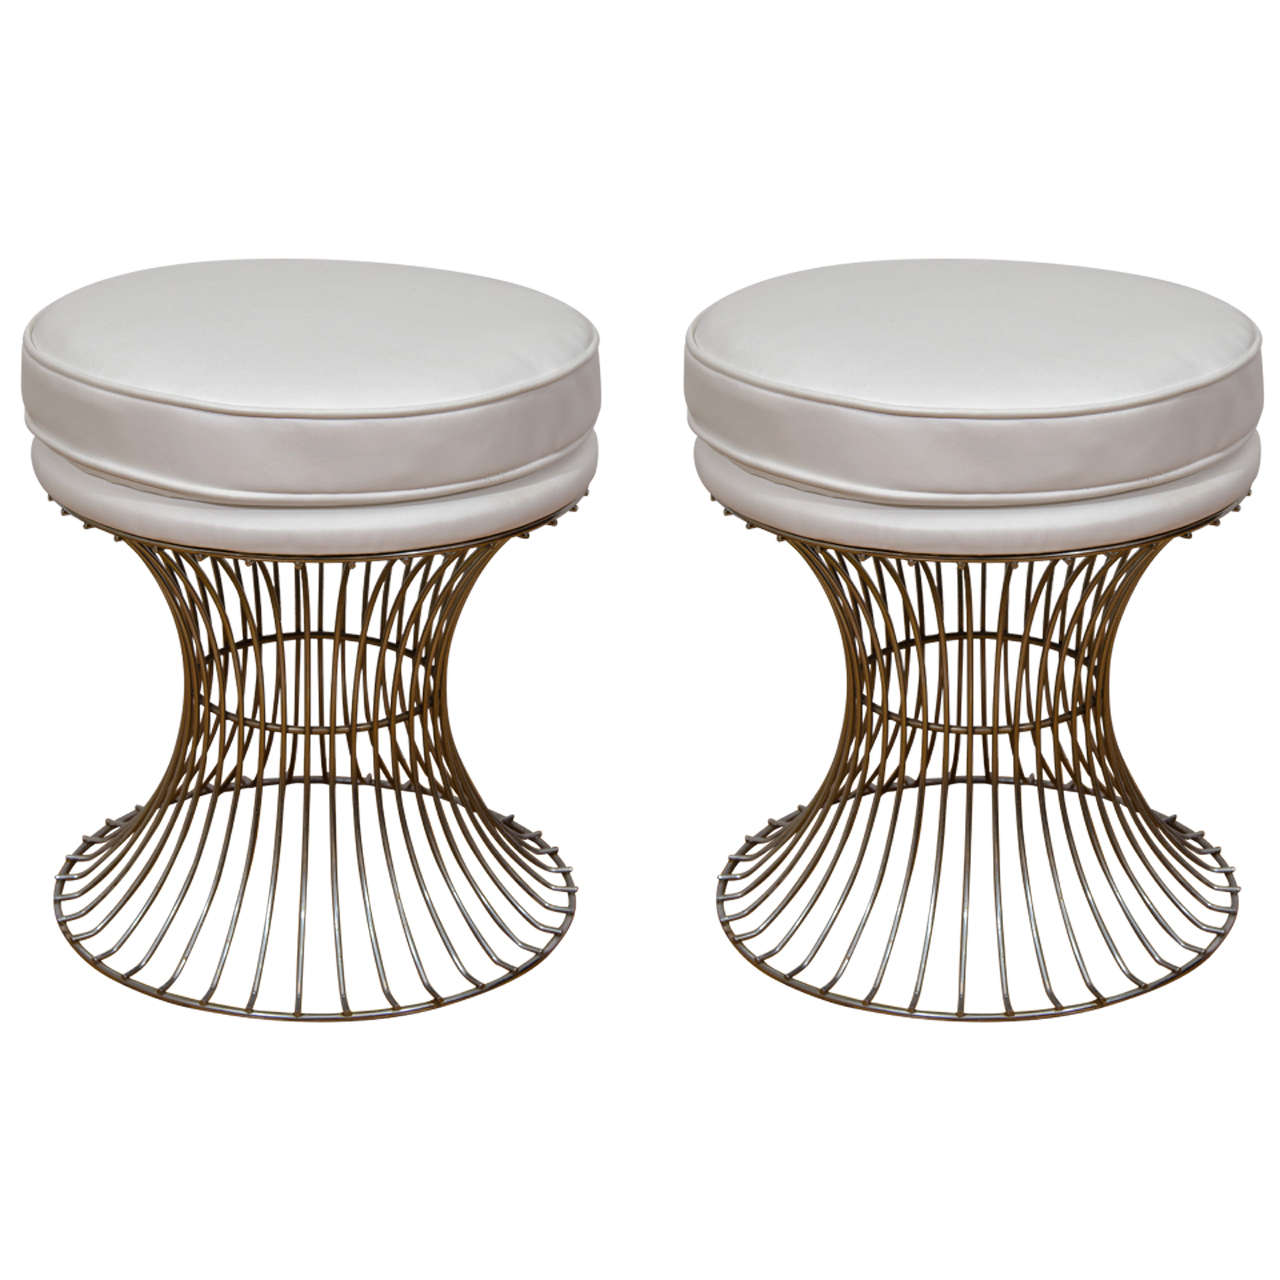 Midcentury Pair of Chrome Wire Base Stools in the Style of  : X from www.1stdibs.com size 1280 x 1280 jpeg 117kB